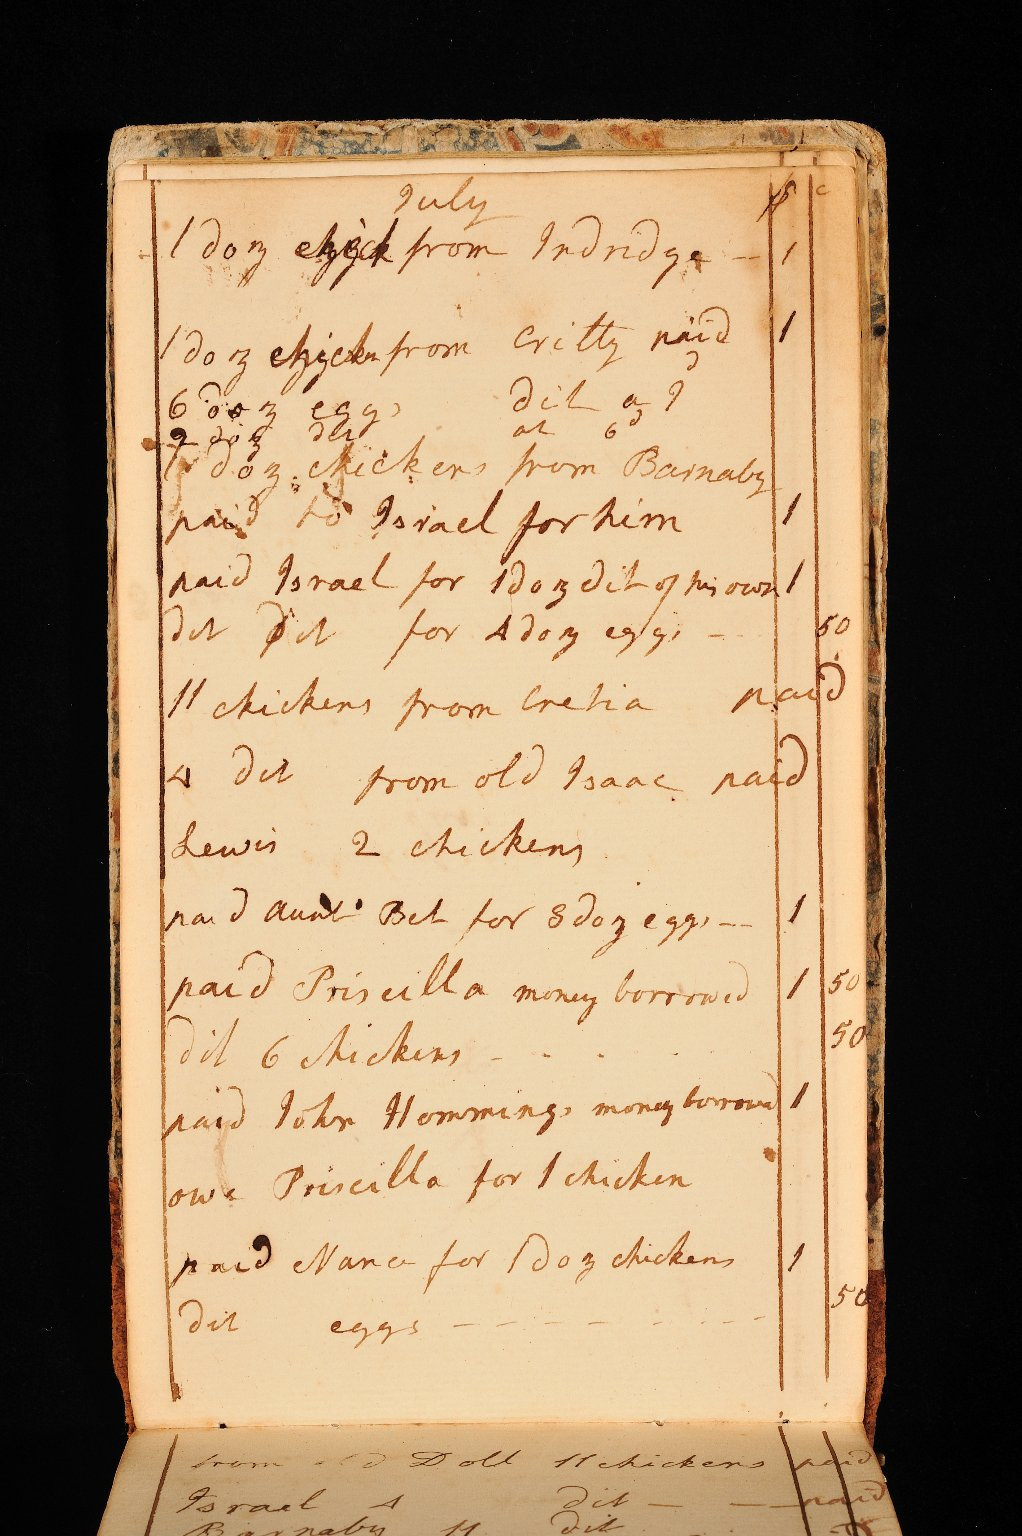 Account book, page 13